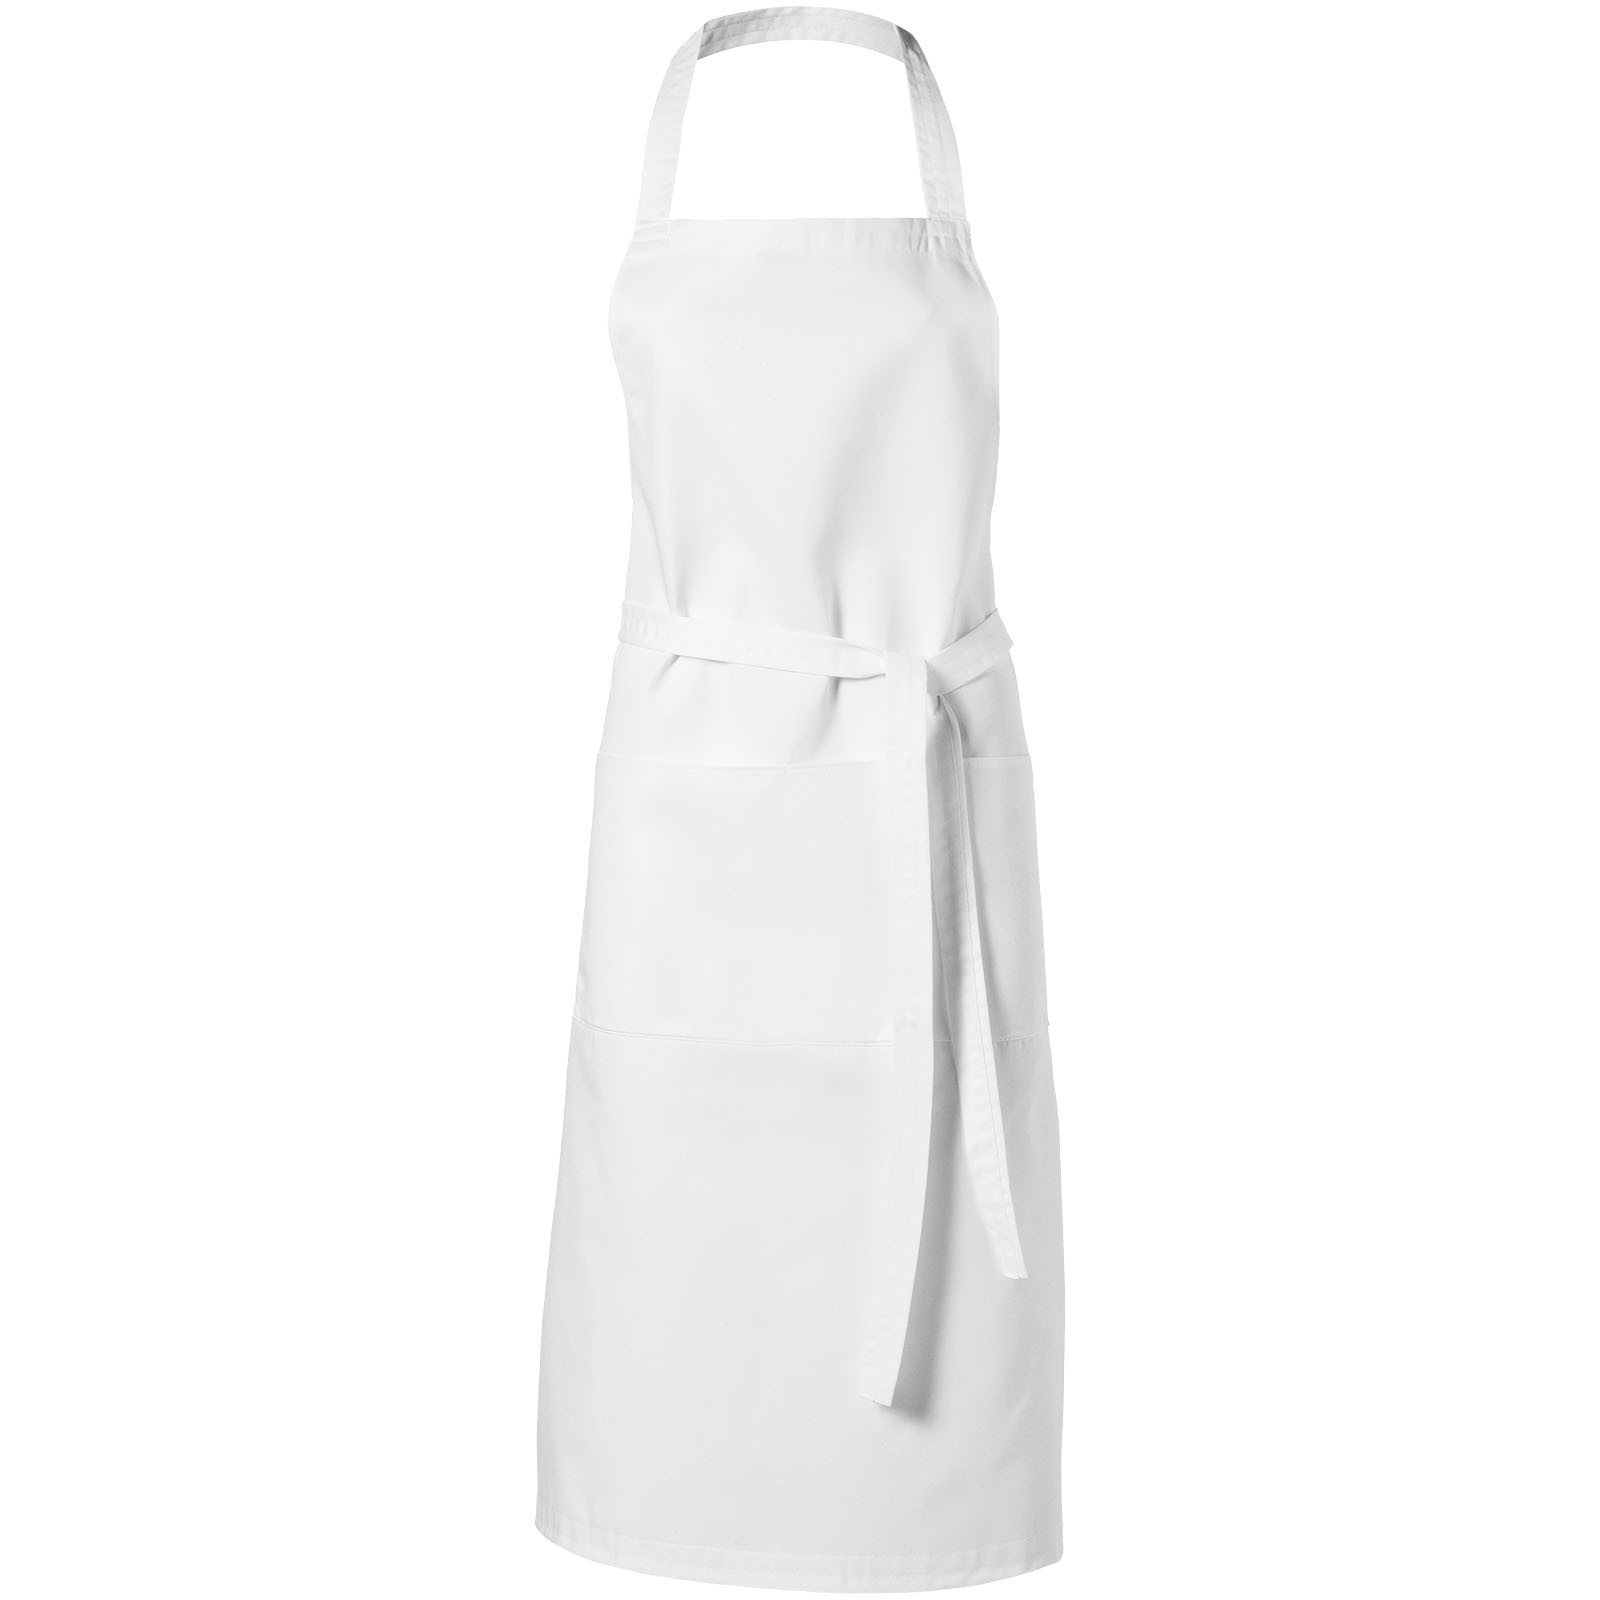 Viera apron with 2 pockets - White